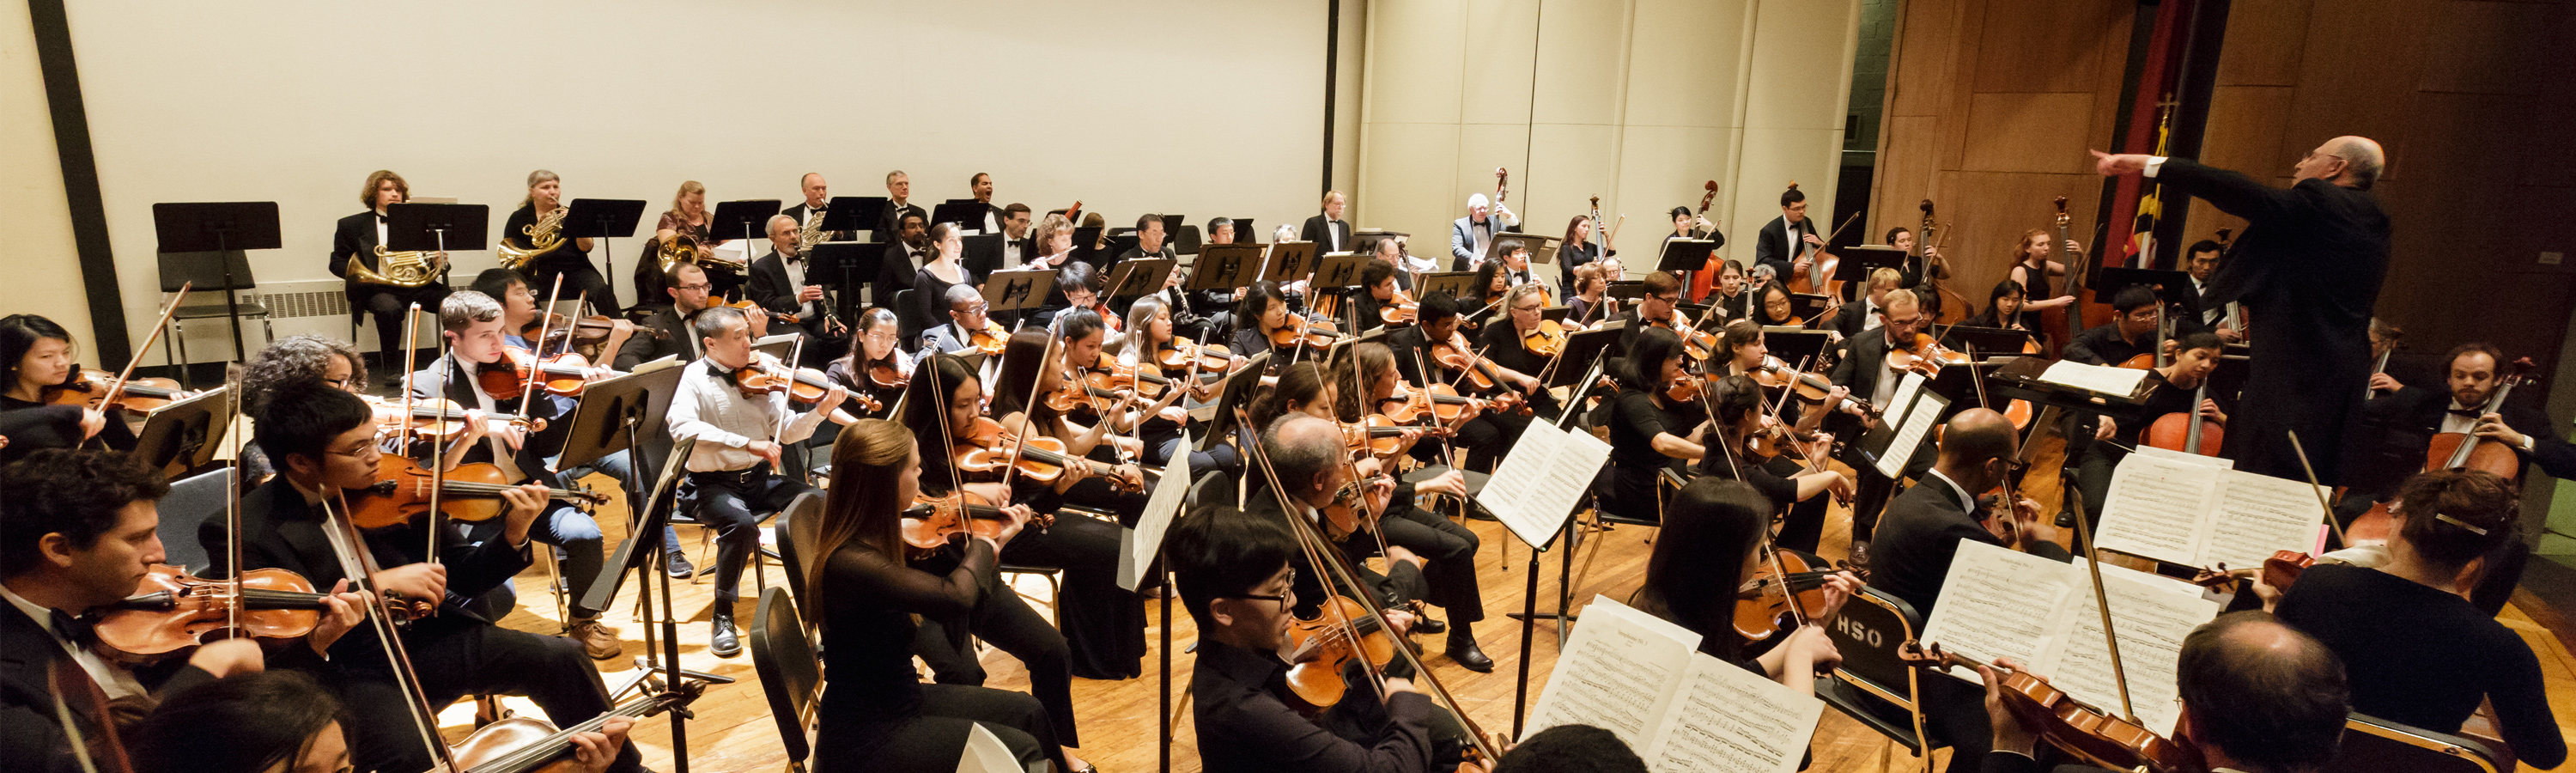 Hopkins Symphony Orchestra Evenings Part I - Star-Crossed: Tchaikovsky's Romeo and Juliet and Bernstein's Symphonic Dances from West Side Story  header image